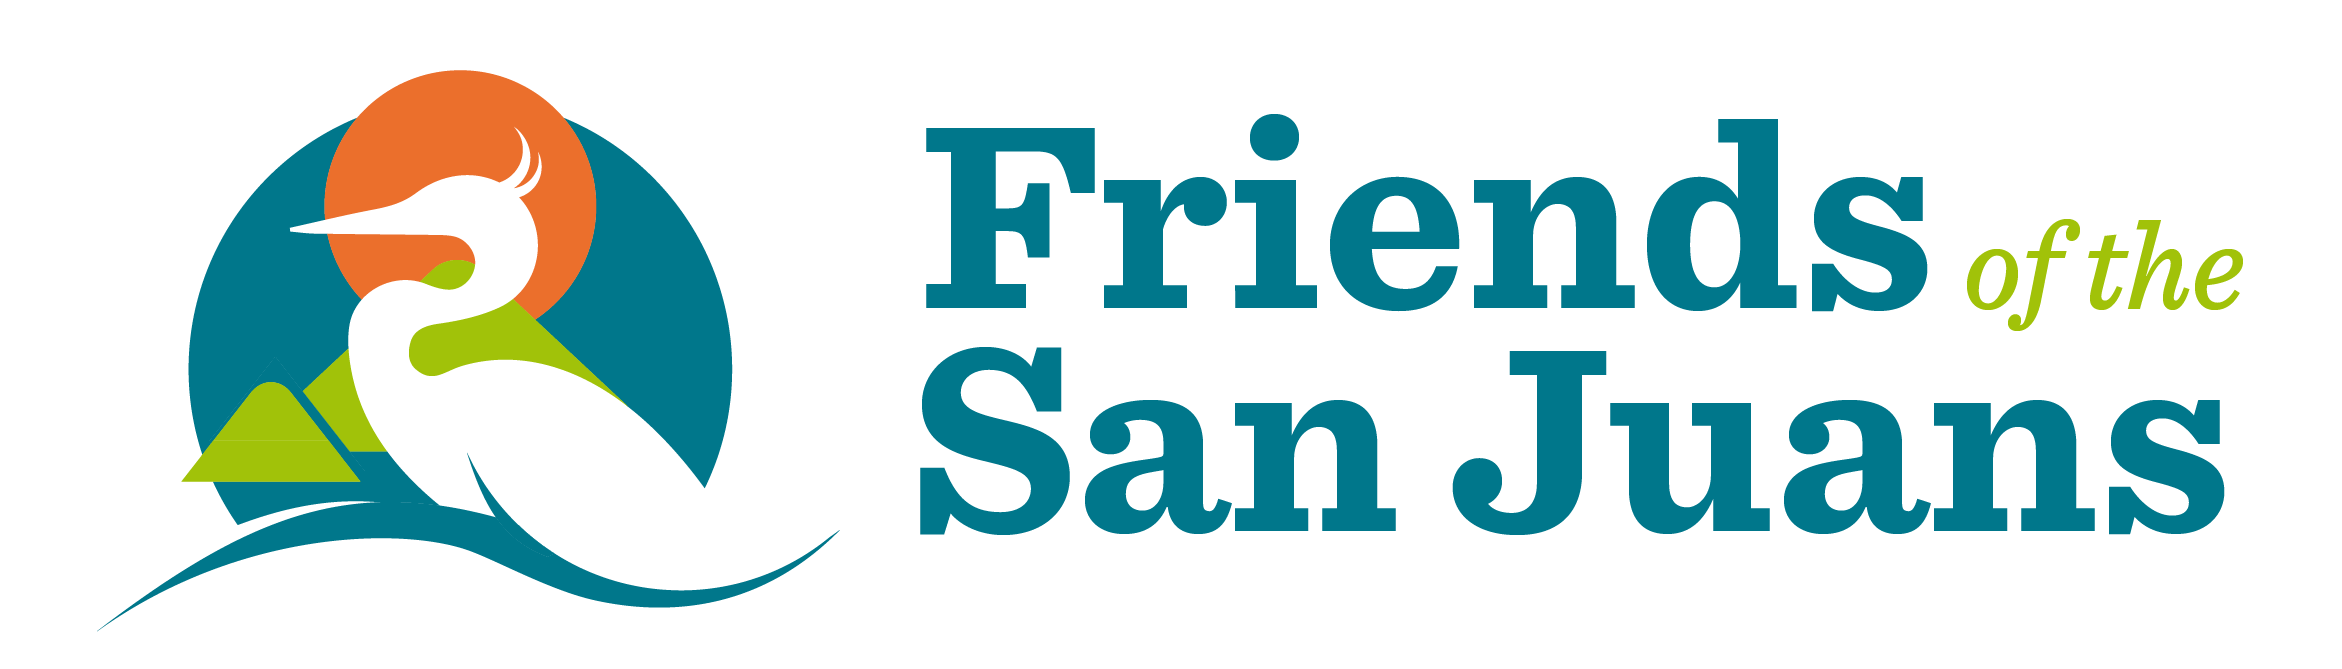 Friends of the San Juans